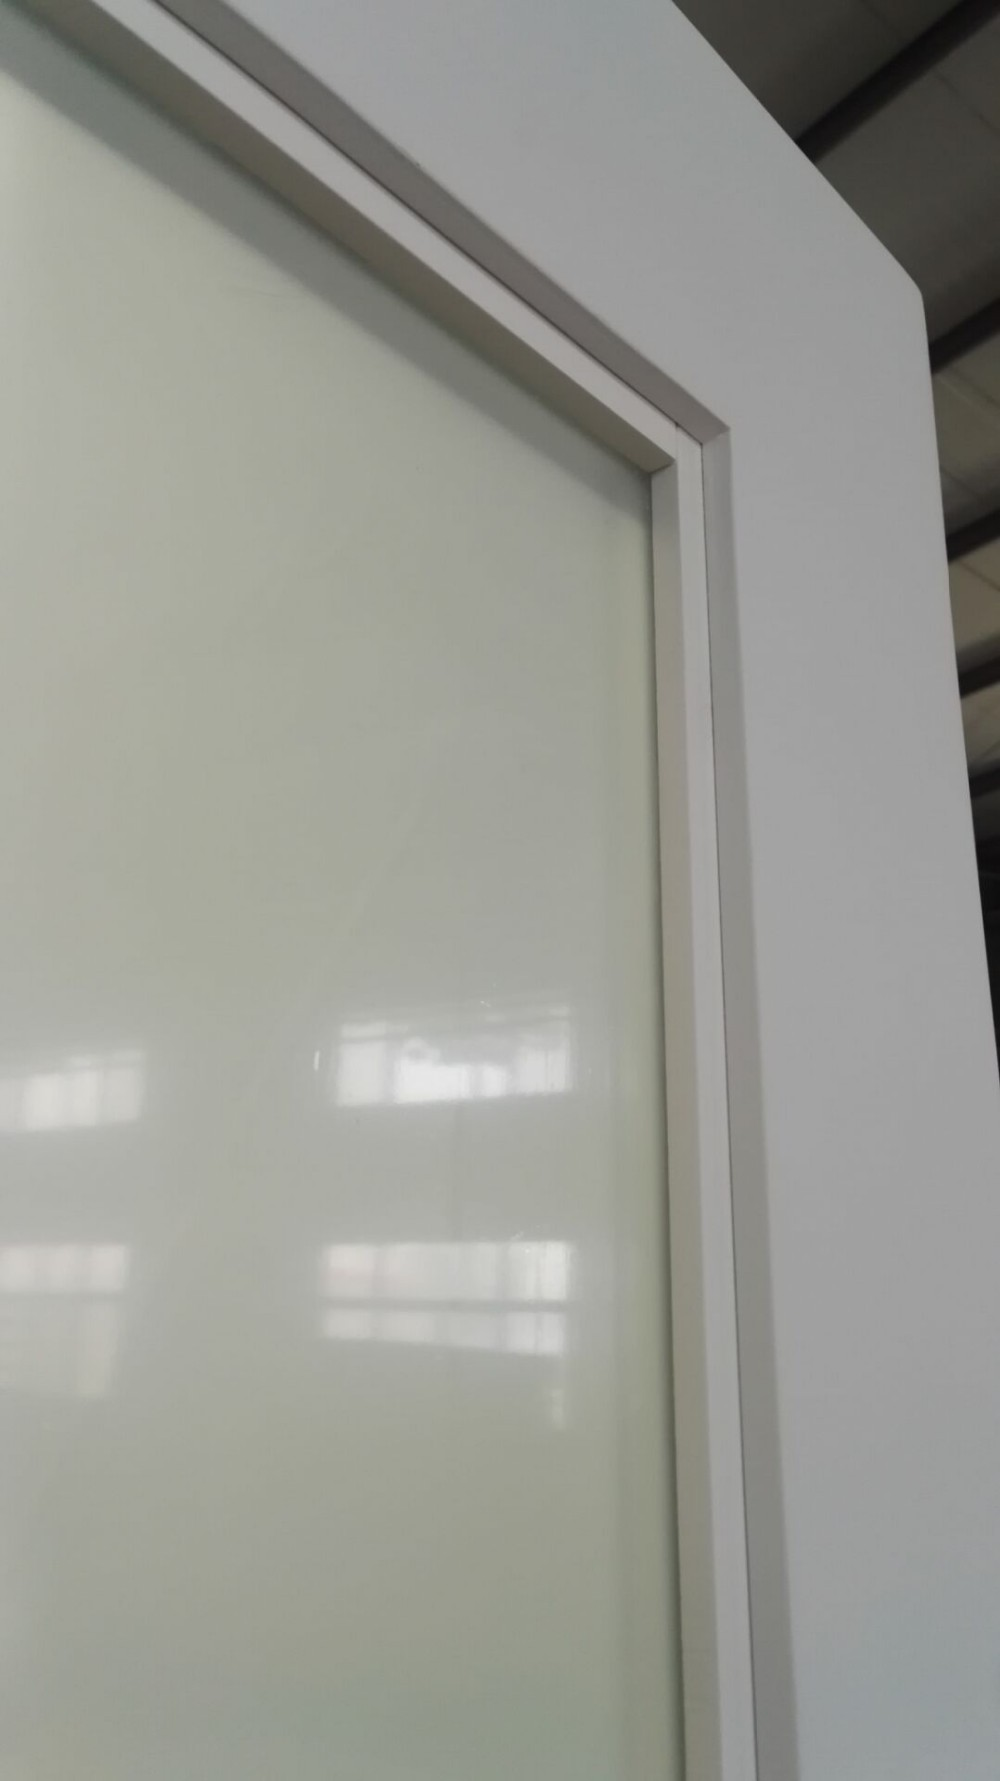 Hotel frosted glass sliding barn door buy hotel door for Barn doors over sliding glass doors